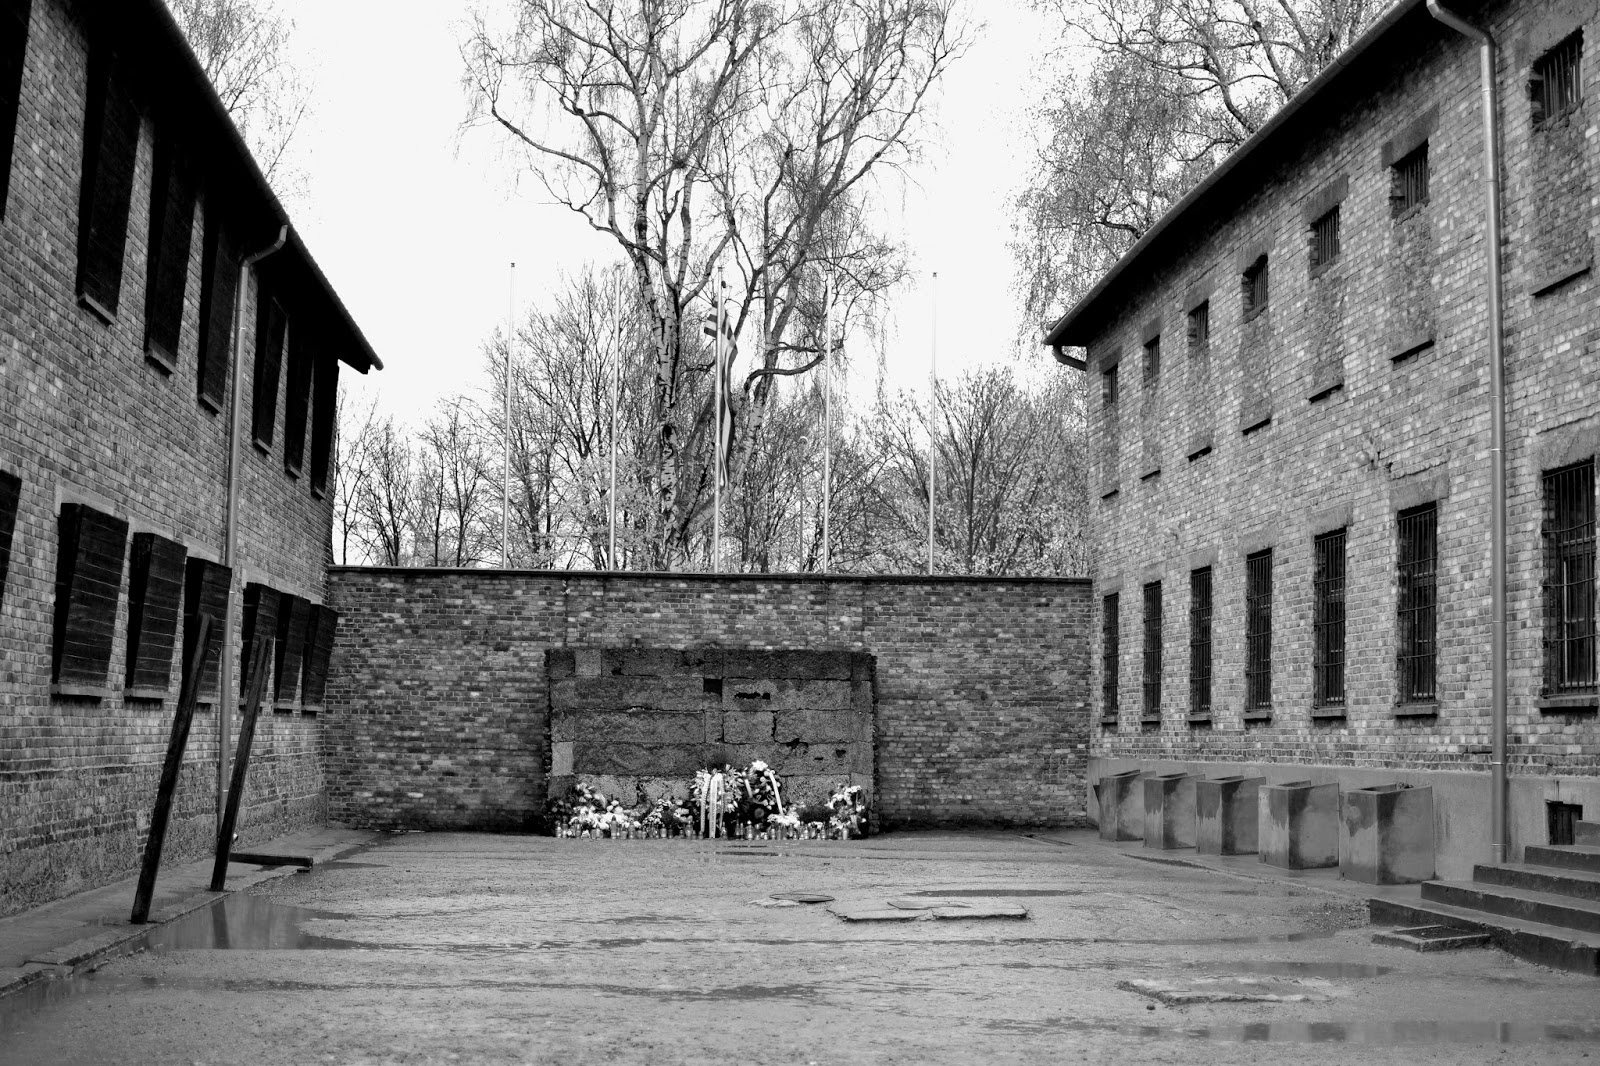 Death wall, block 11, Auschwitz, Birkenau, concentration camp, poland, nazi, death, death camp, train tracks, death gate, black and white, world war 2, ww2, hilter, germany, How to get to Auschwitz, Auschwitz hair, gas chamber, history, reflections on Auschwitz, experiences, travel, traveling, europe, bus to Auschwitz, train to Auschwitz, Auschwitz tours, Auschwitz guides, Auschwitz reports, photography, Halt Stouj!, barbed wire, fences, Auschwitz swimming pool, Auschwitz beauty, Arbeit macht frei, work makes you free,